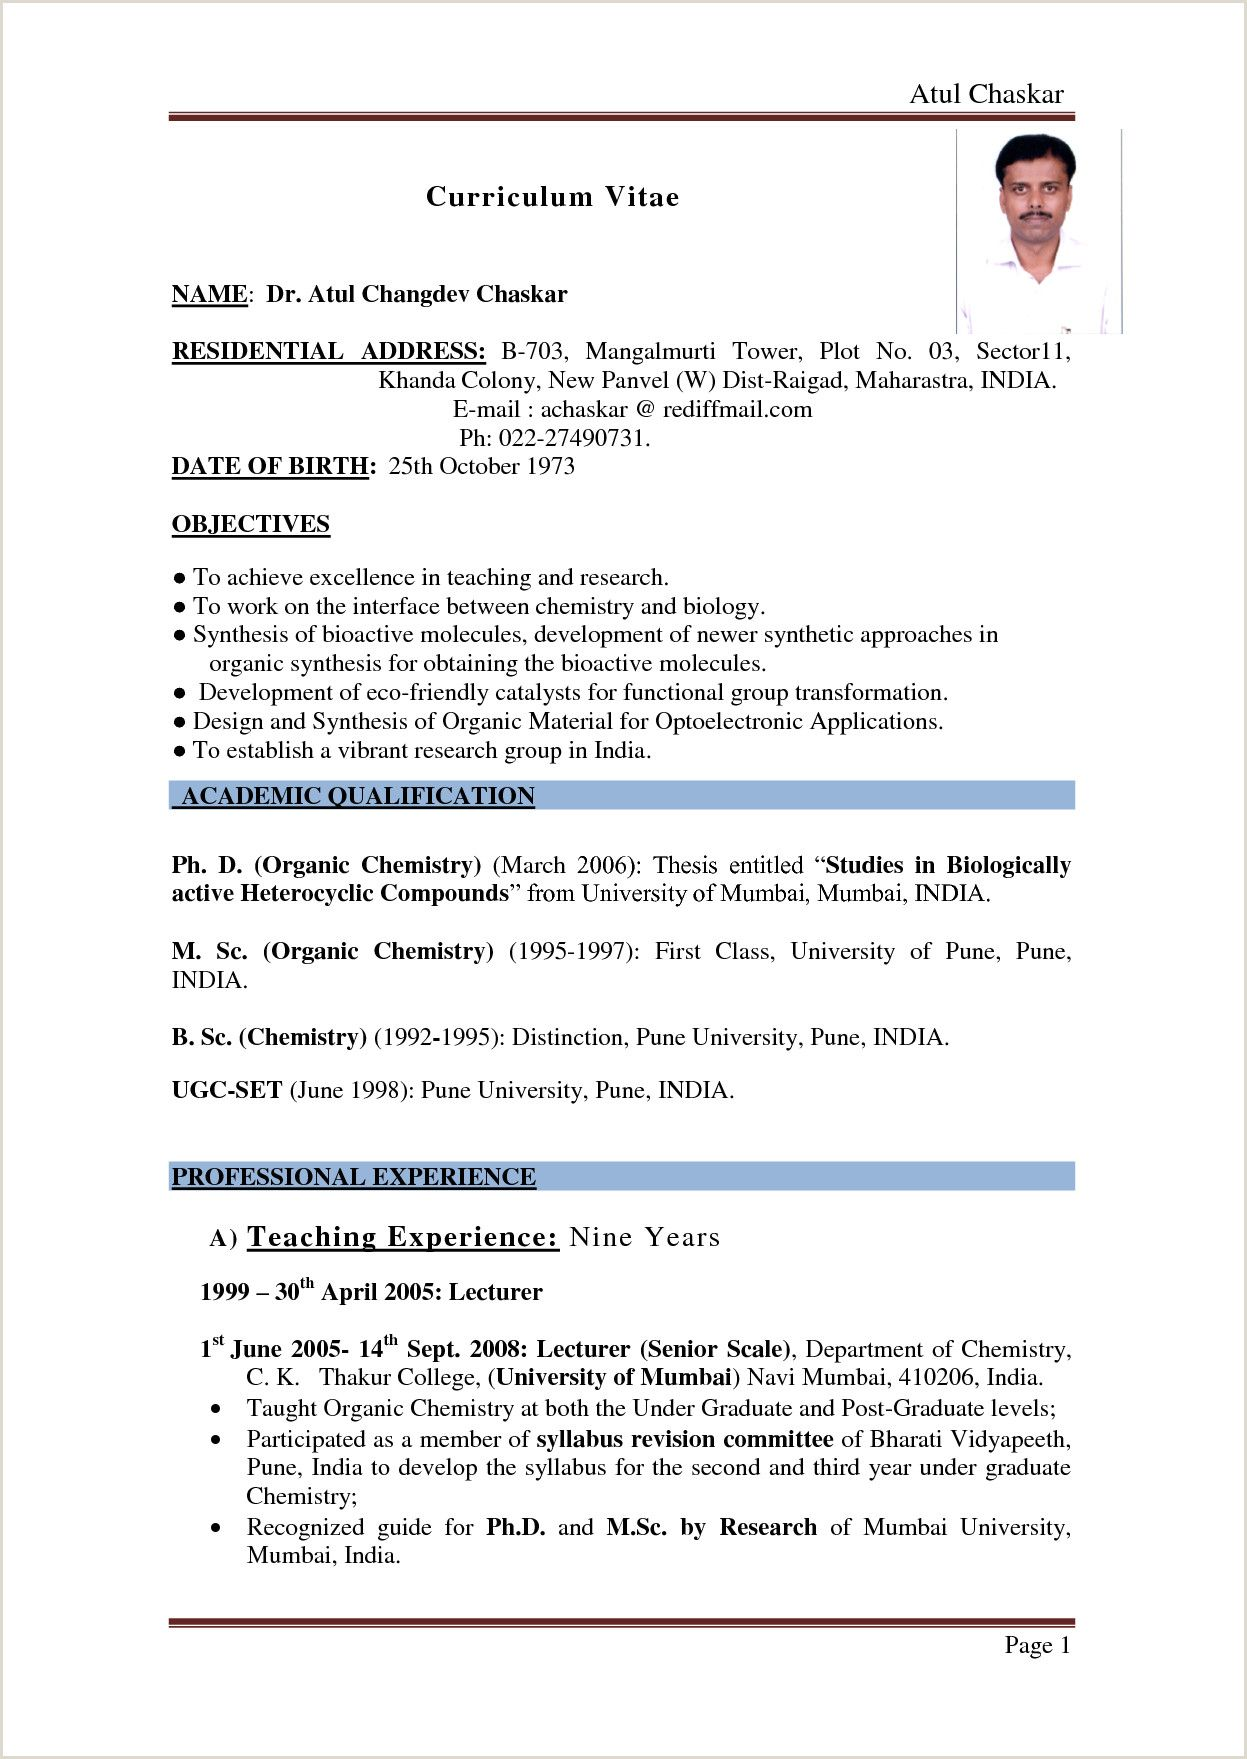 resume format for bsc chemistry freshers pdf best examples zoology teacher federal Resume Resume For Zoology Teacher